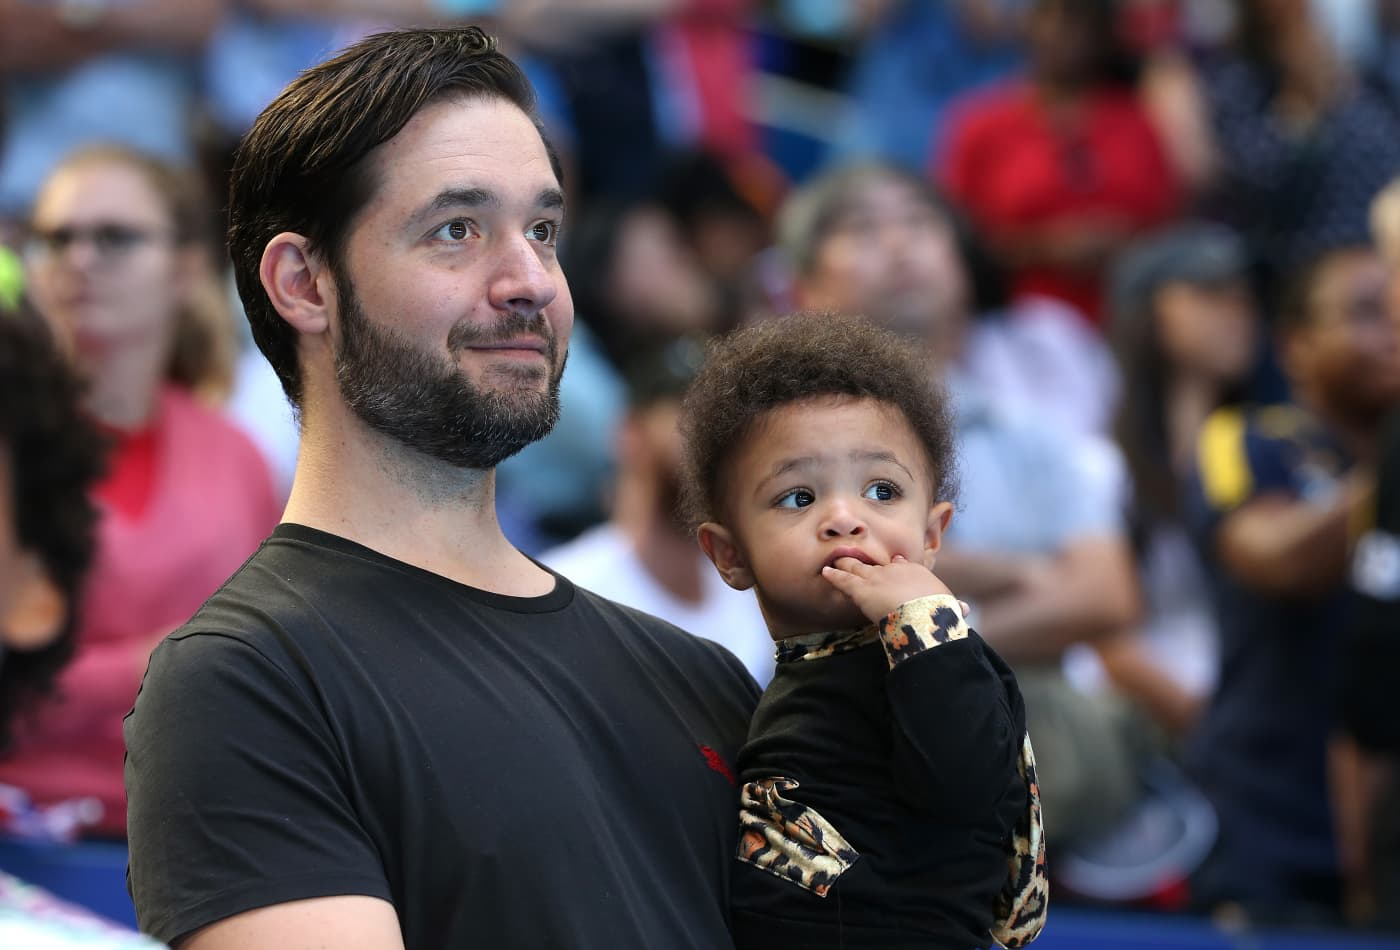 Reddit co-founder Alexis Ohanian on glorifying being overworked